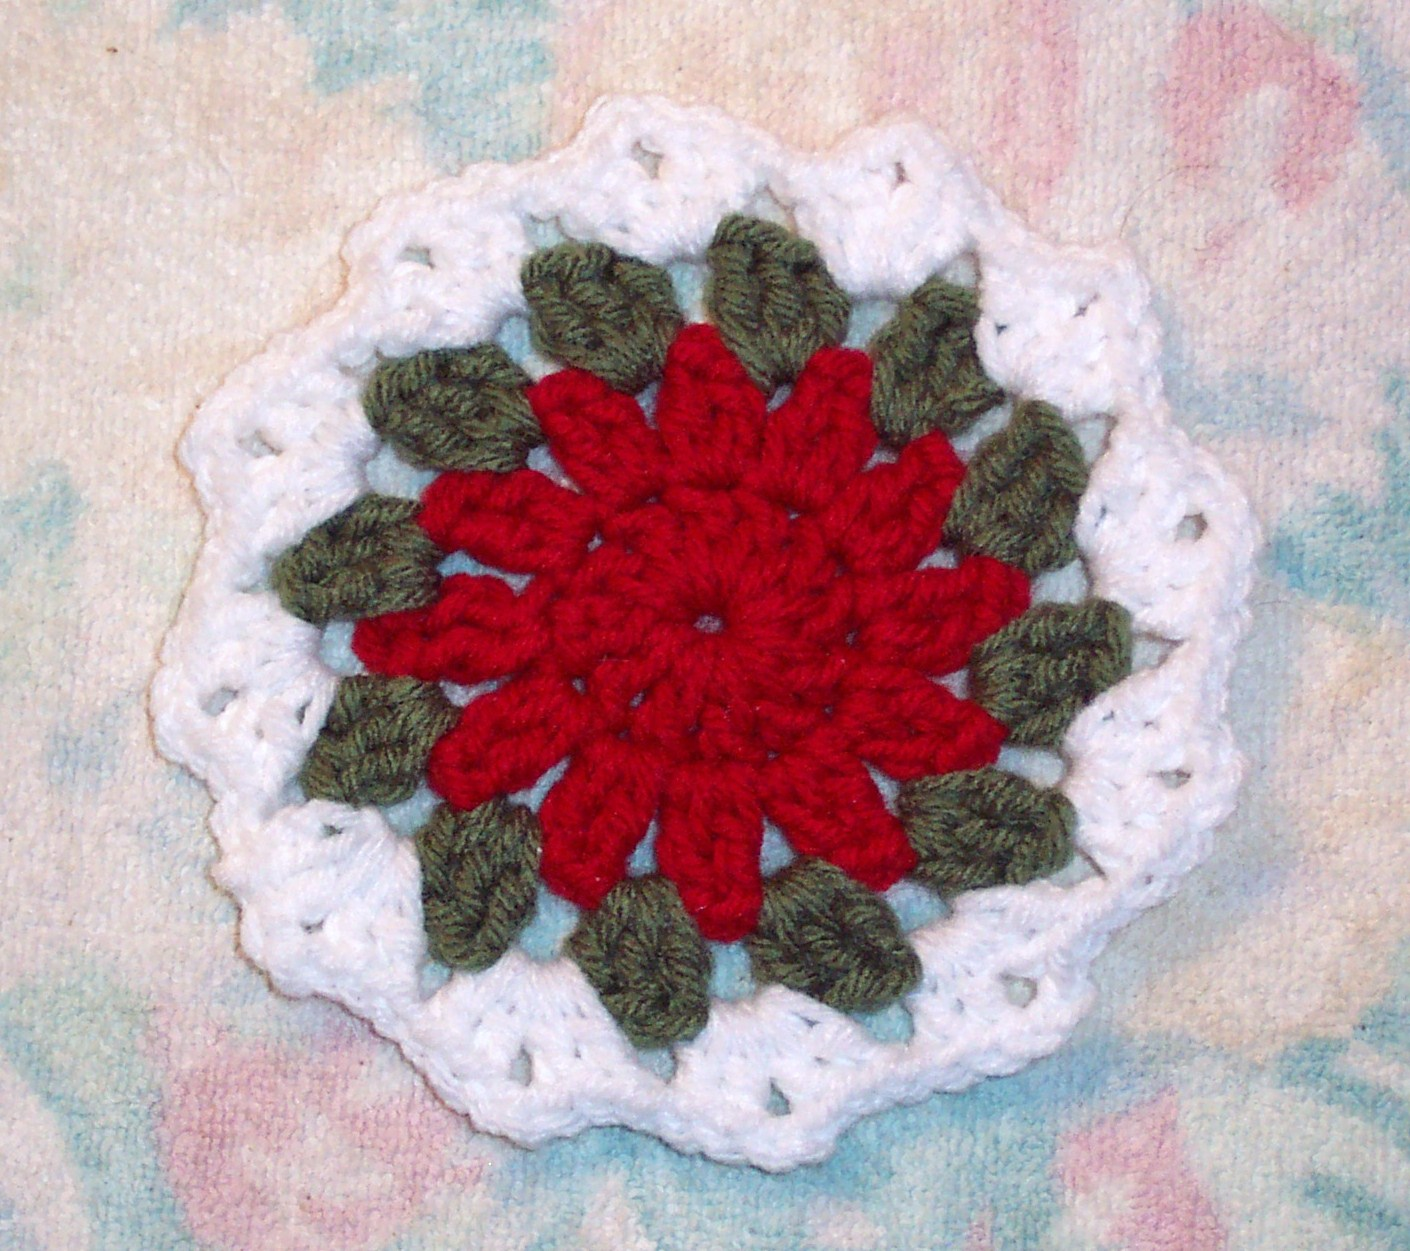 Free Crochet Santa Claus Coaster Pattern : SmoothFox Crochet and Knit: SmoothFoxs Holiday Coaster ...